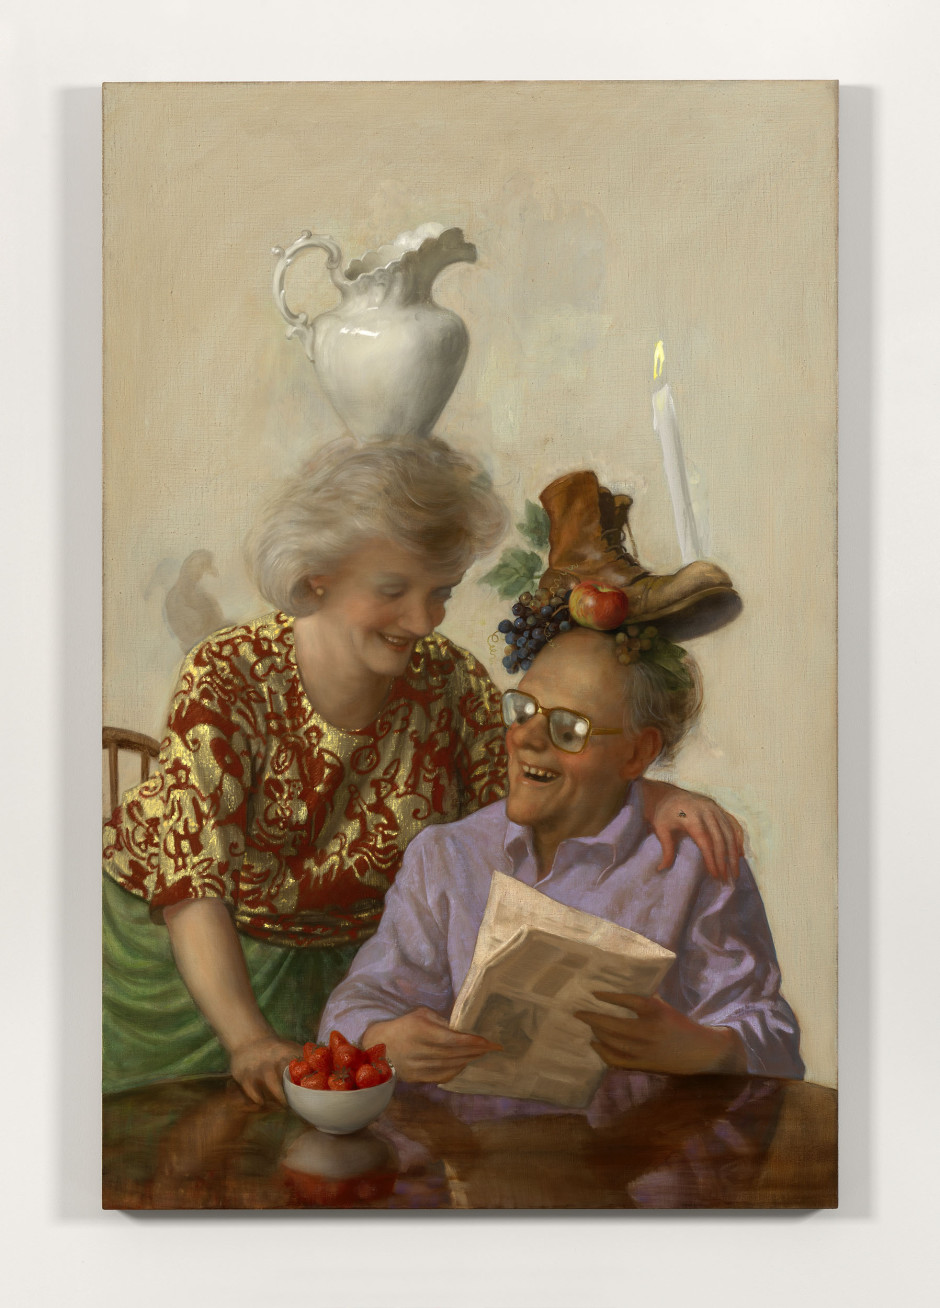 Newspaper Couple, 2016  oil on canvas  173.0 x 112.0 x 4.0 cm 68 x 44 x 1 1/2 in.